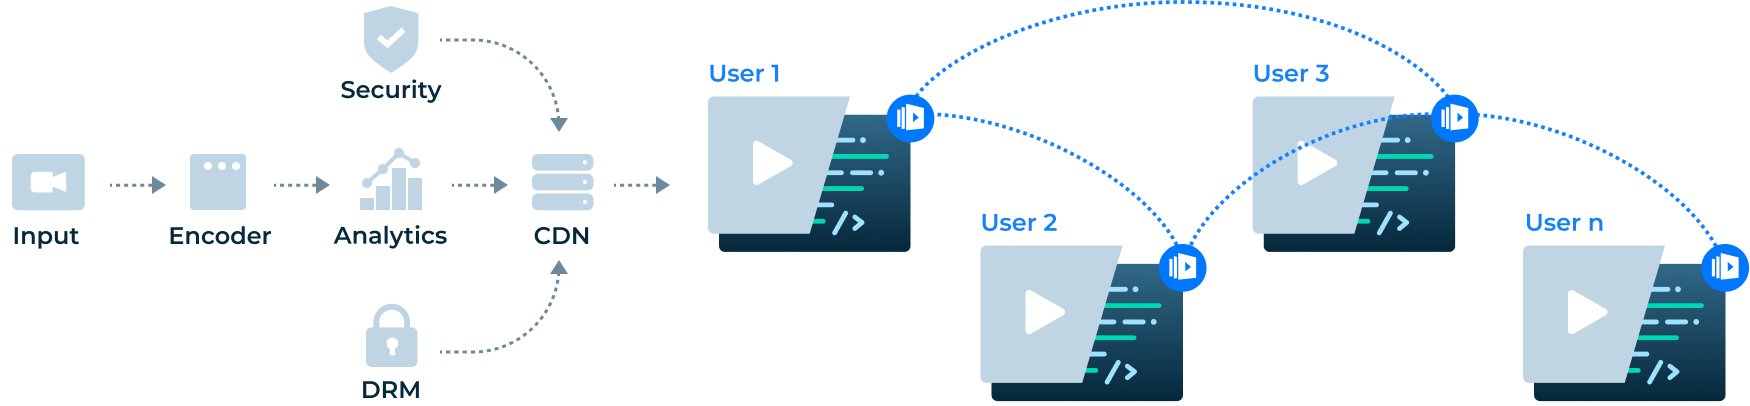 Teleport media delivery chain